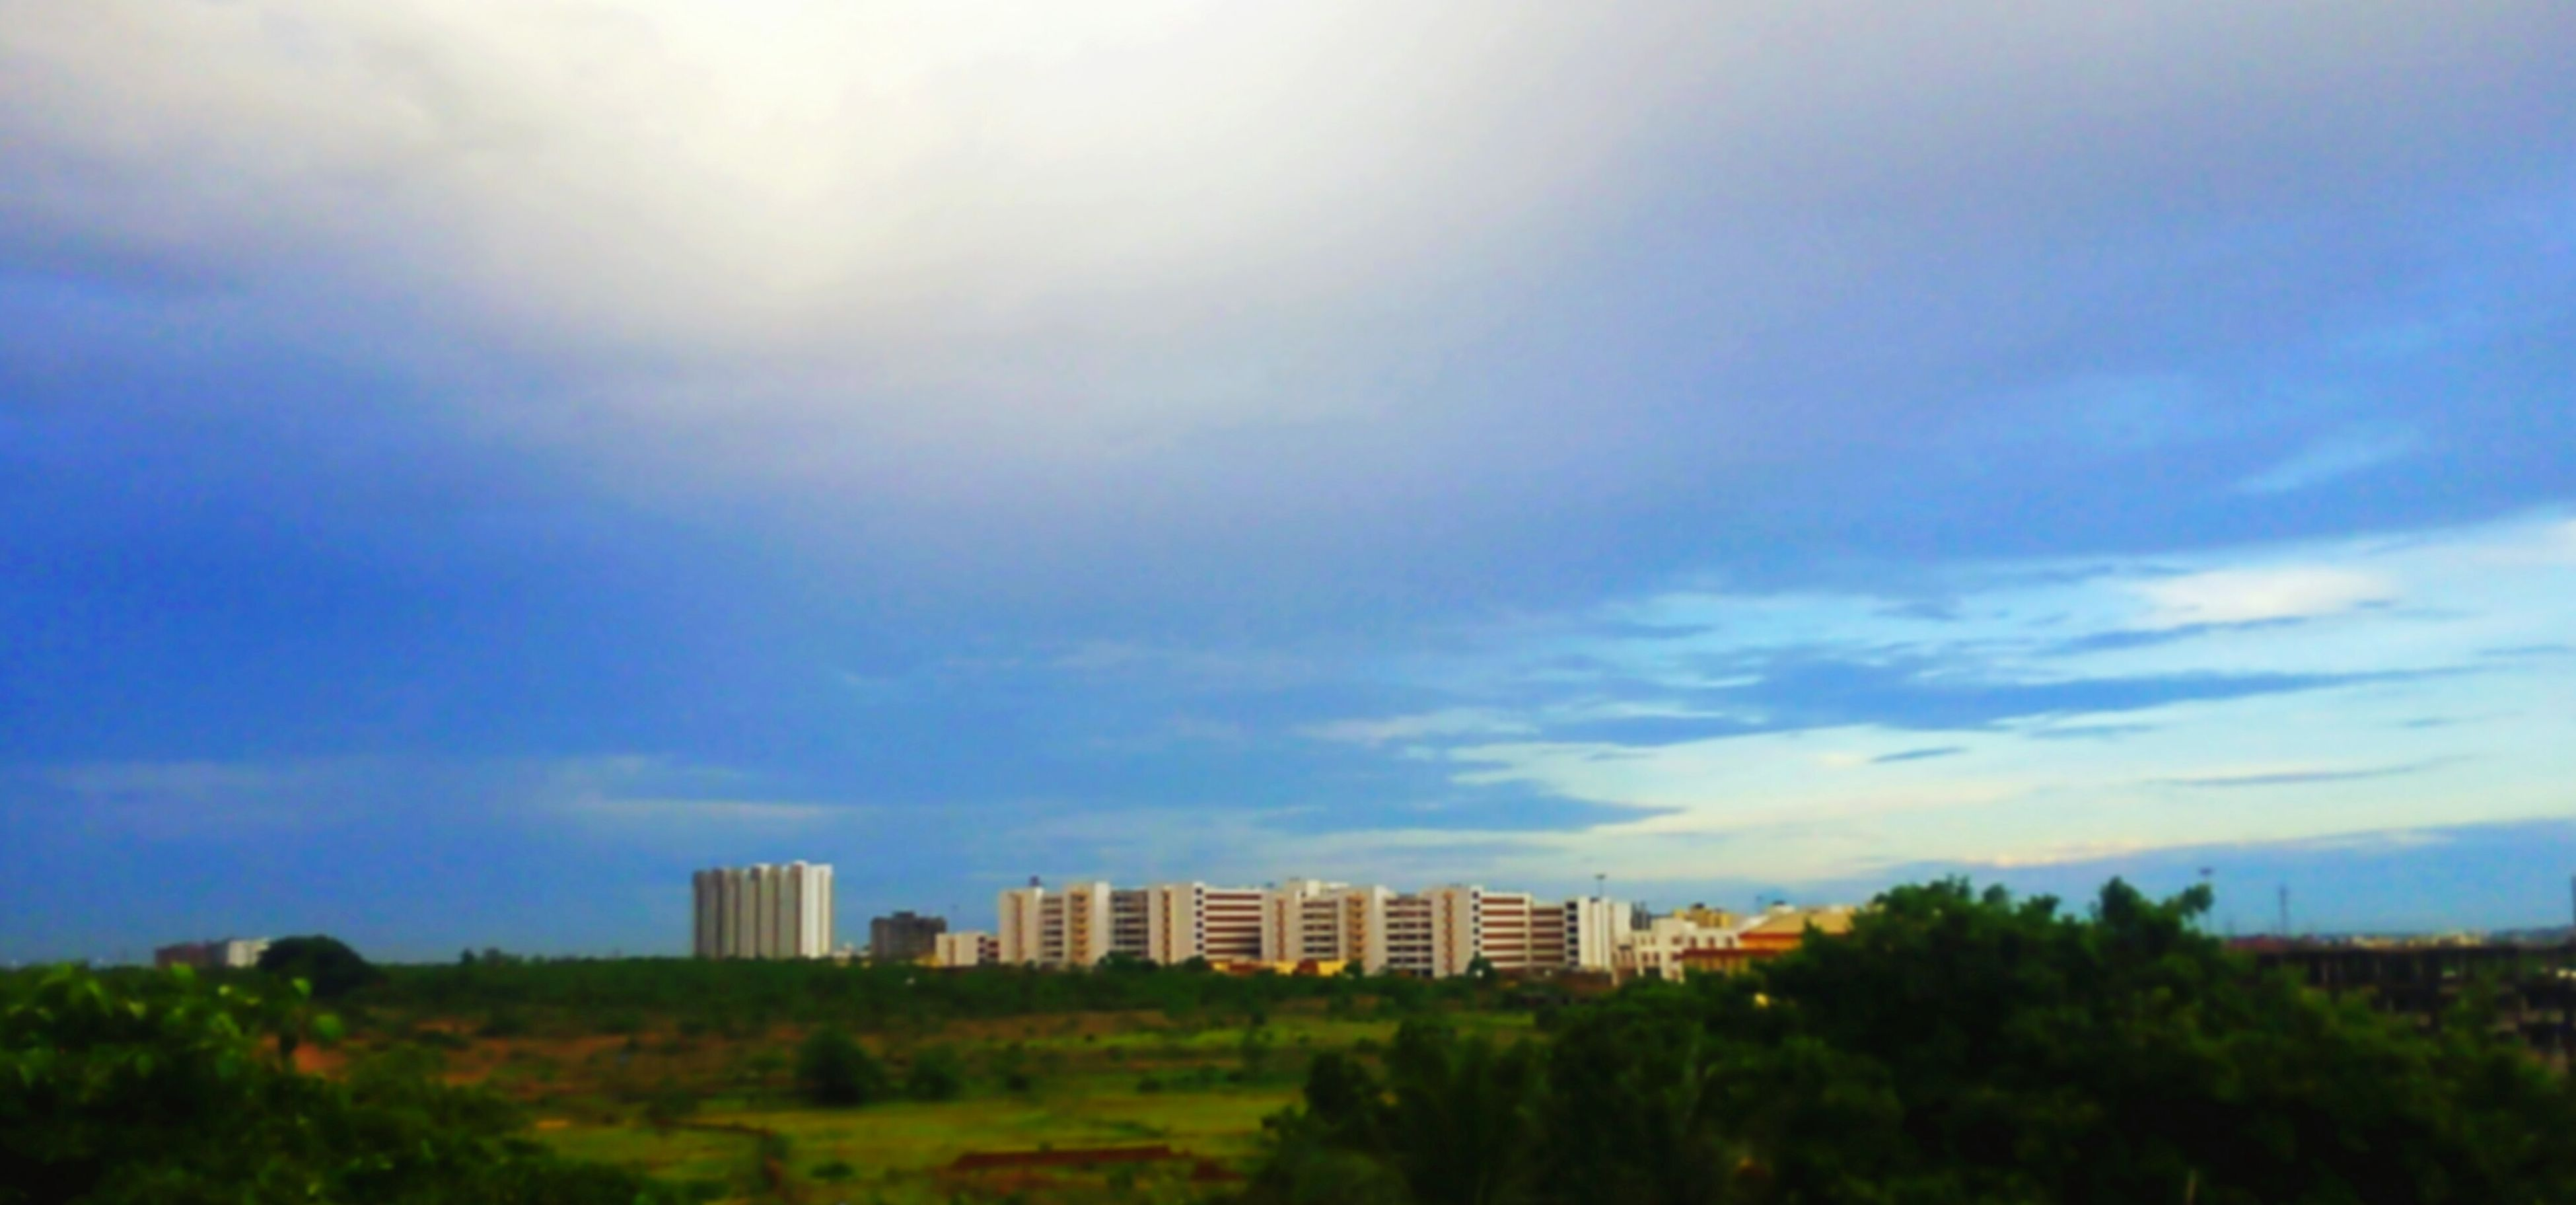 building exterior, sky, architecture, built structure, city, tree, no people, cloud - sky, outdoors, nature, growth, cityscape, grass, day